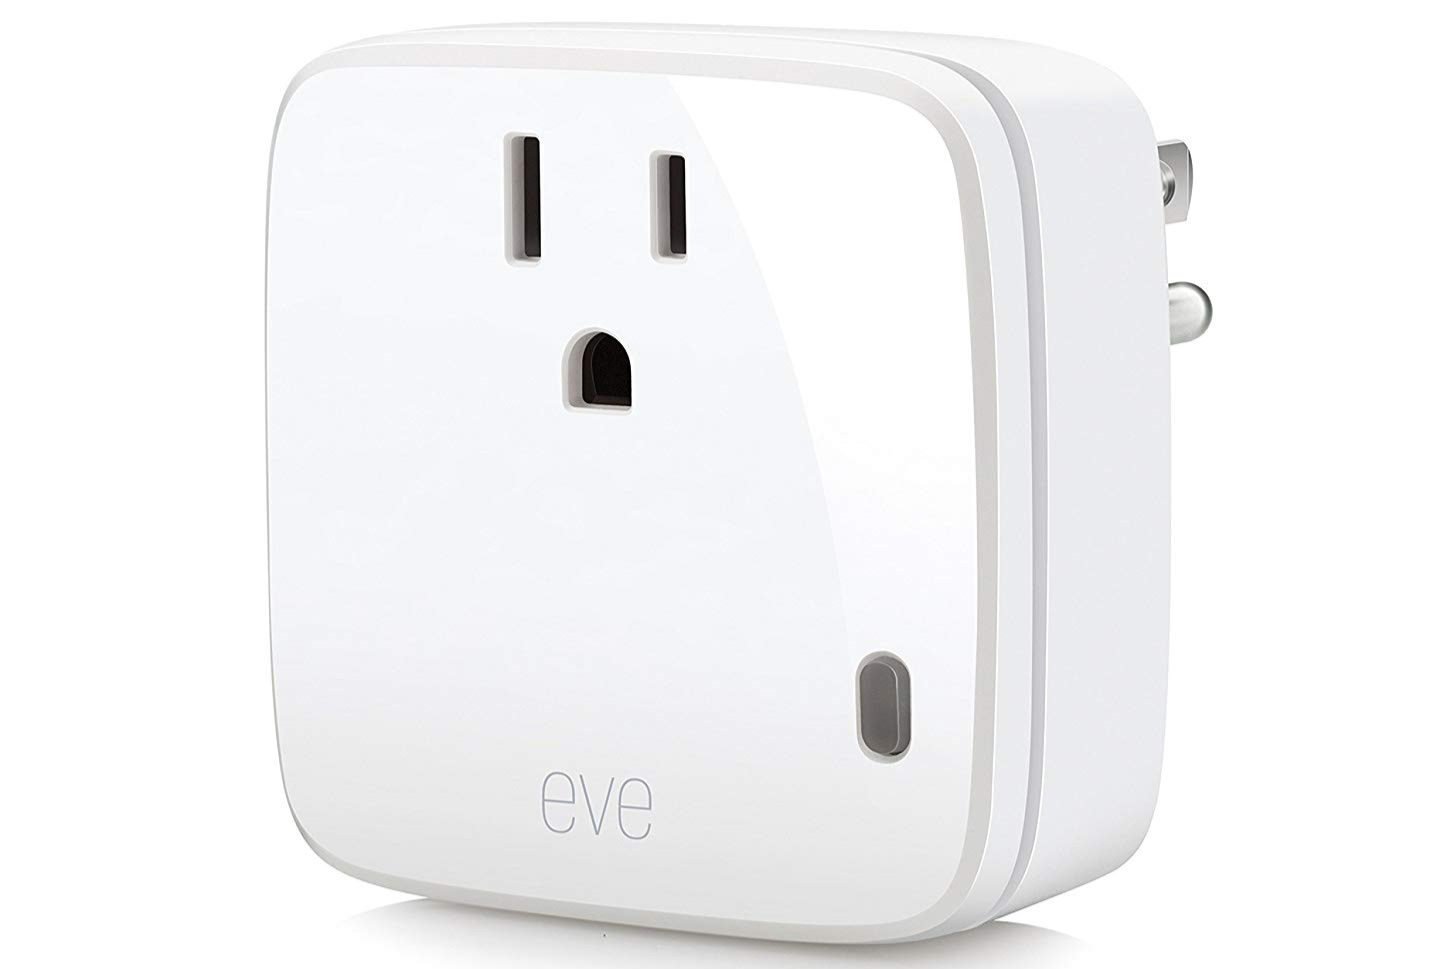 Eve Energy - NA:Type B, Japan: Type A100-240V, 1800W(US)/1100W(Japan), Bluetooth LE, Manual switch, consumption monitoringBuy: Amazon, Direct